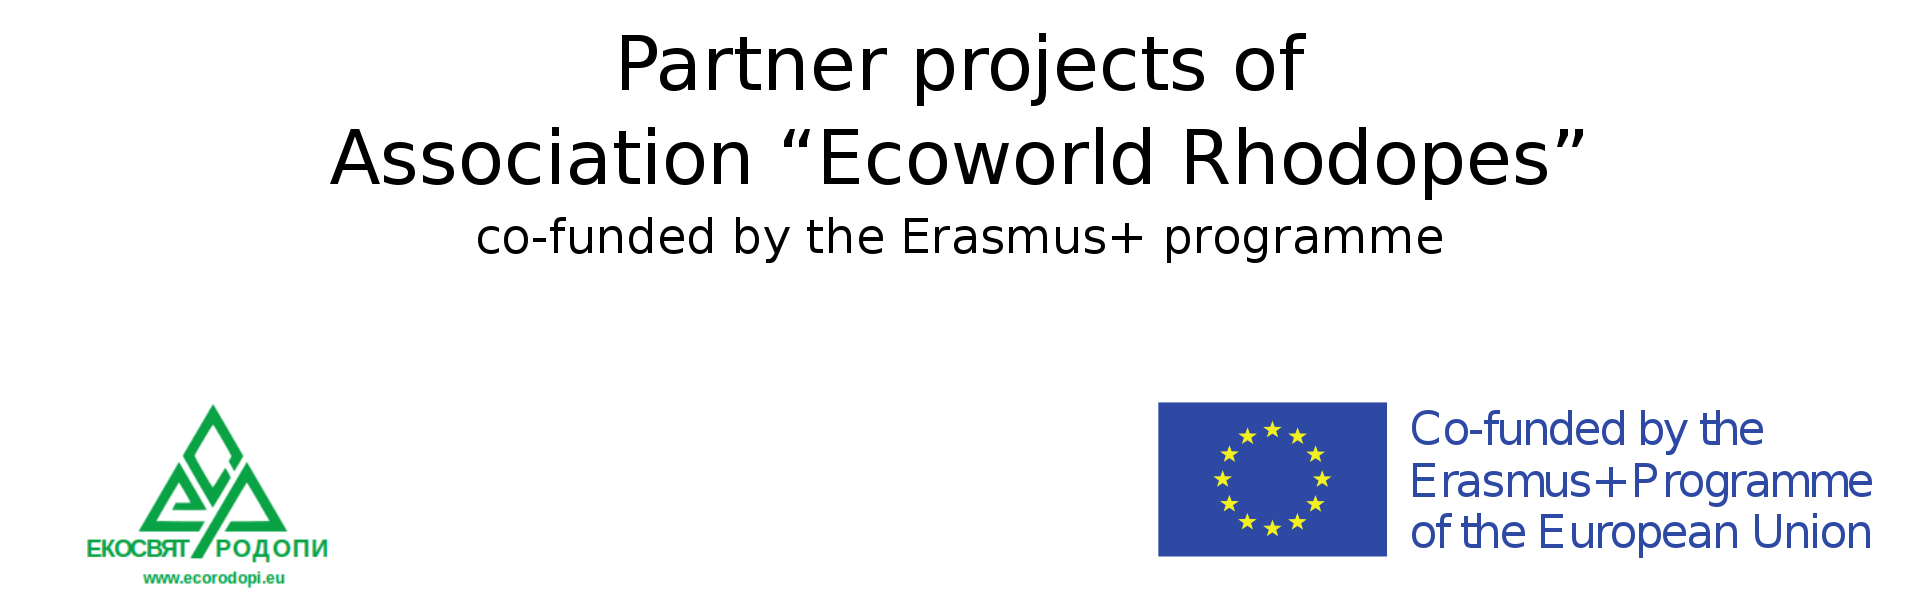 "Partner projects of Association ""Ecoworld Rhodopes"""